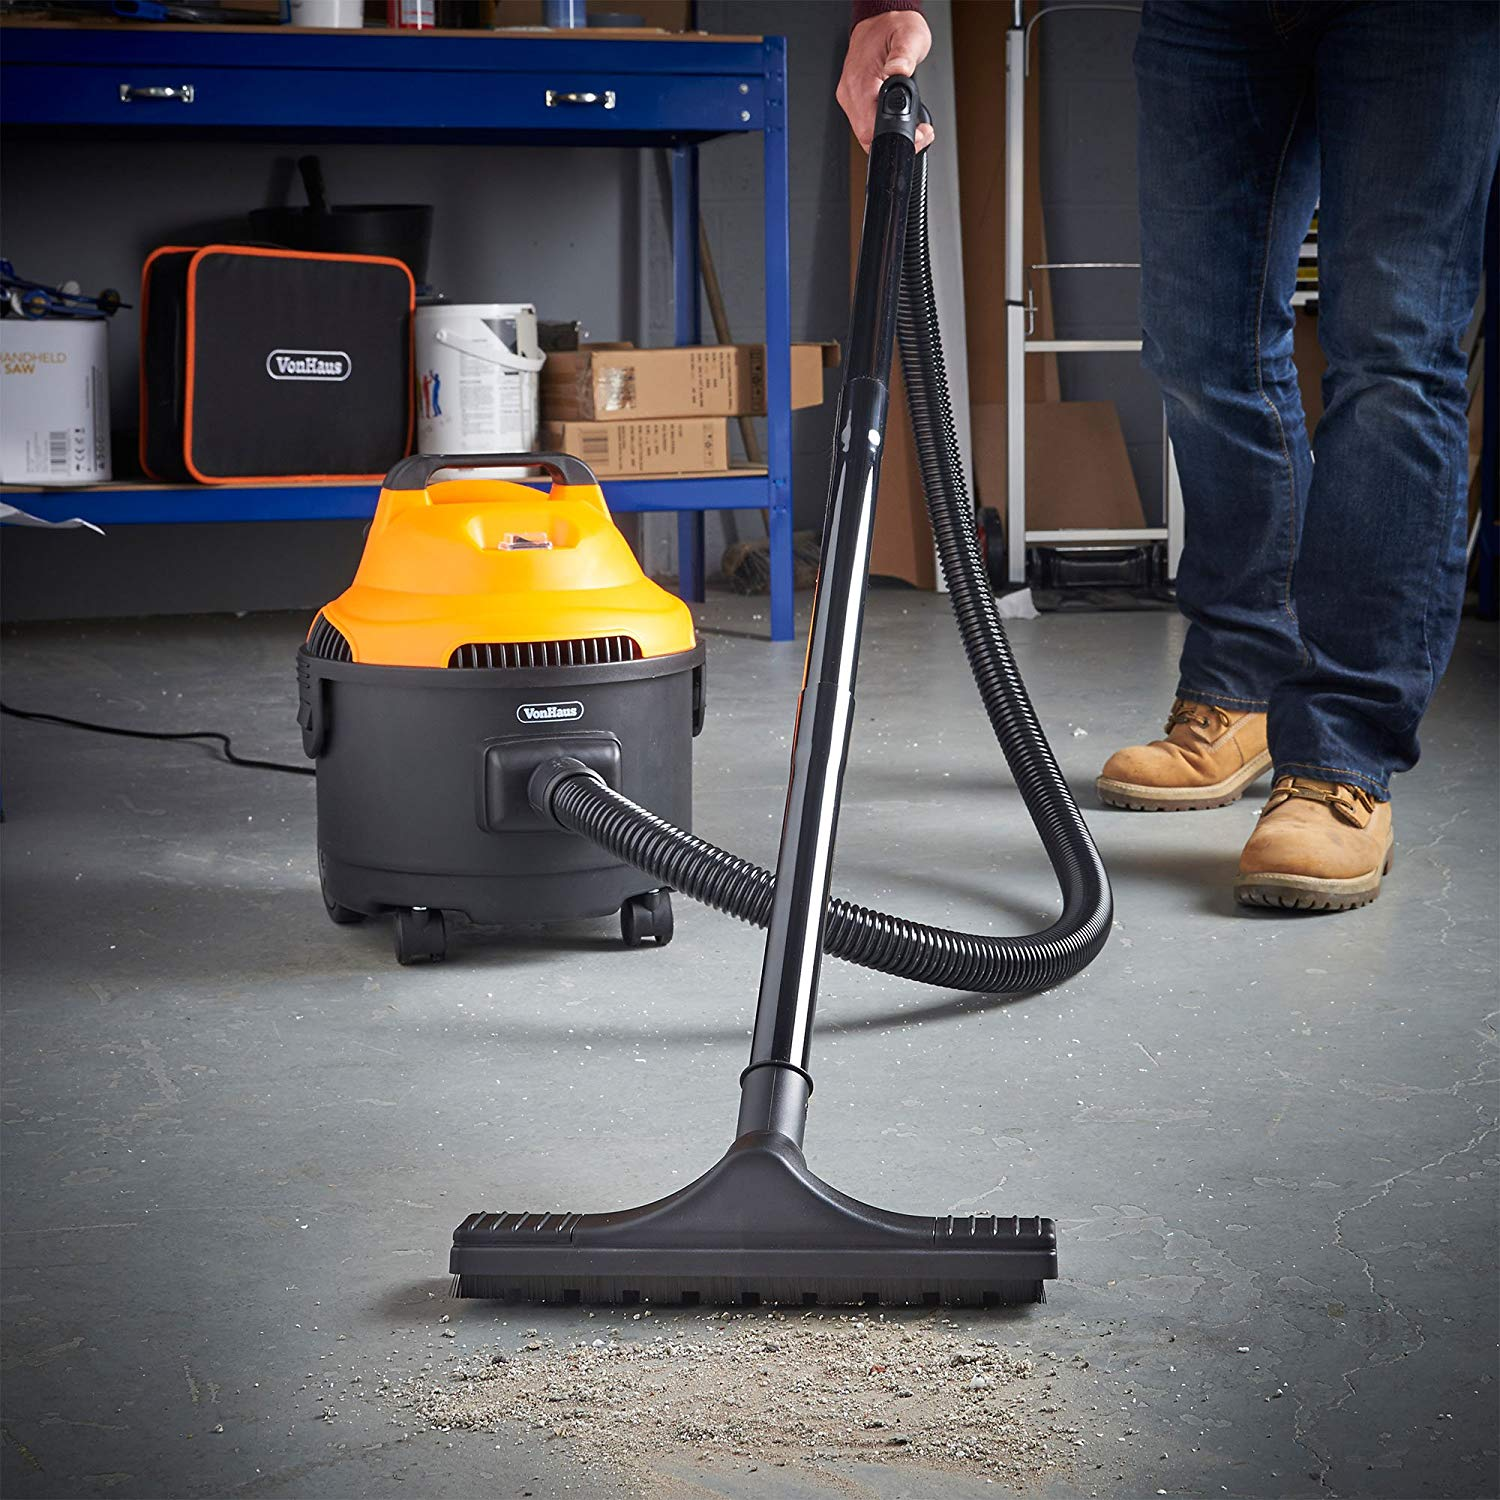 VonHaus 3 in 1 Wet and Dry Bagless Vacuum Cleaner